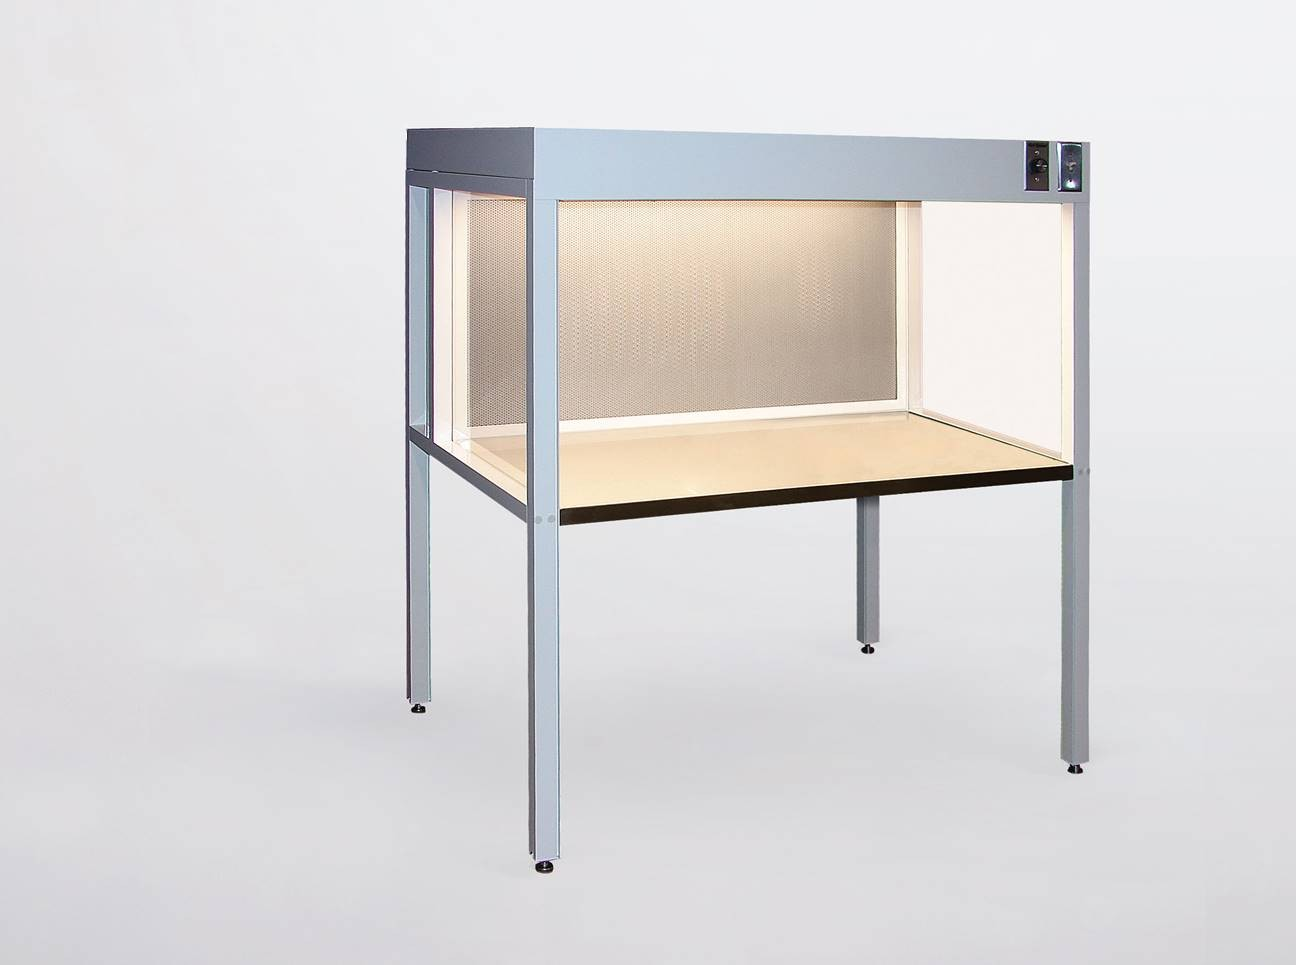 Laminar Flow Hood for Cleanrooms